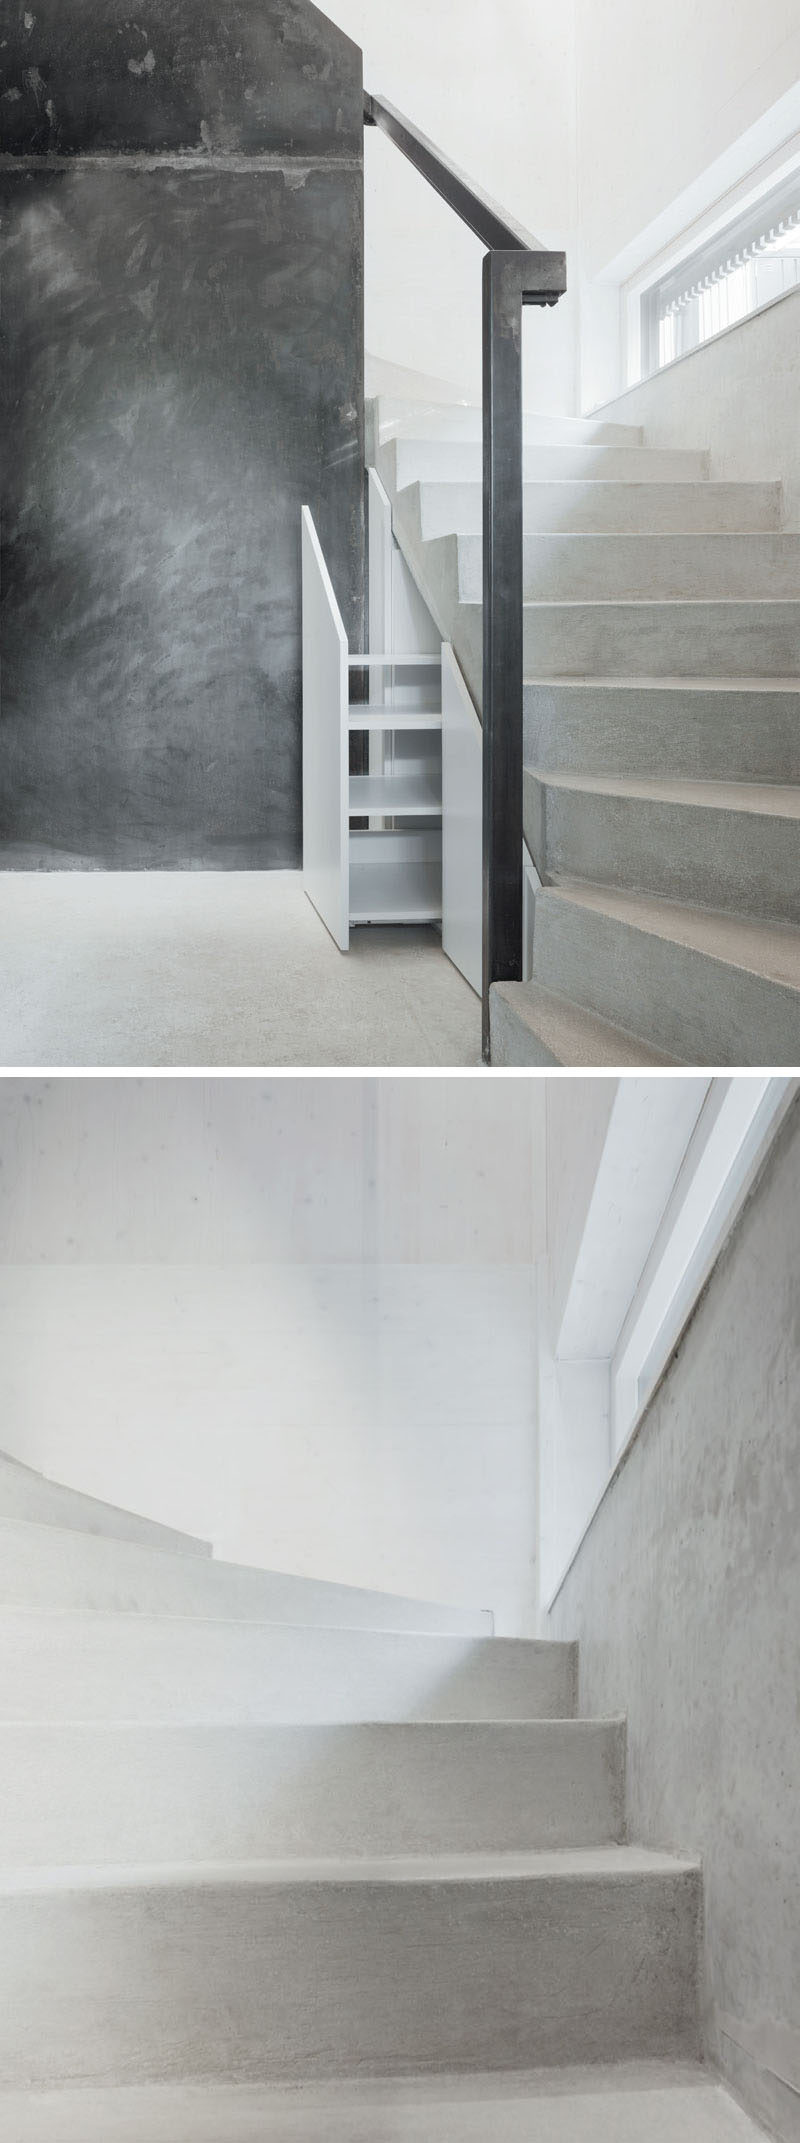 Inside this modern home, storage has been hidden underneath the concrete and steel stairs. A small window half way up the stairs lets natural light in to brighten the space.